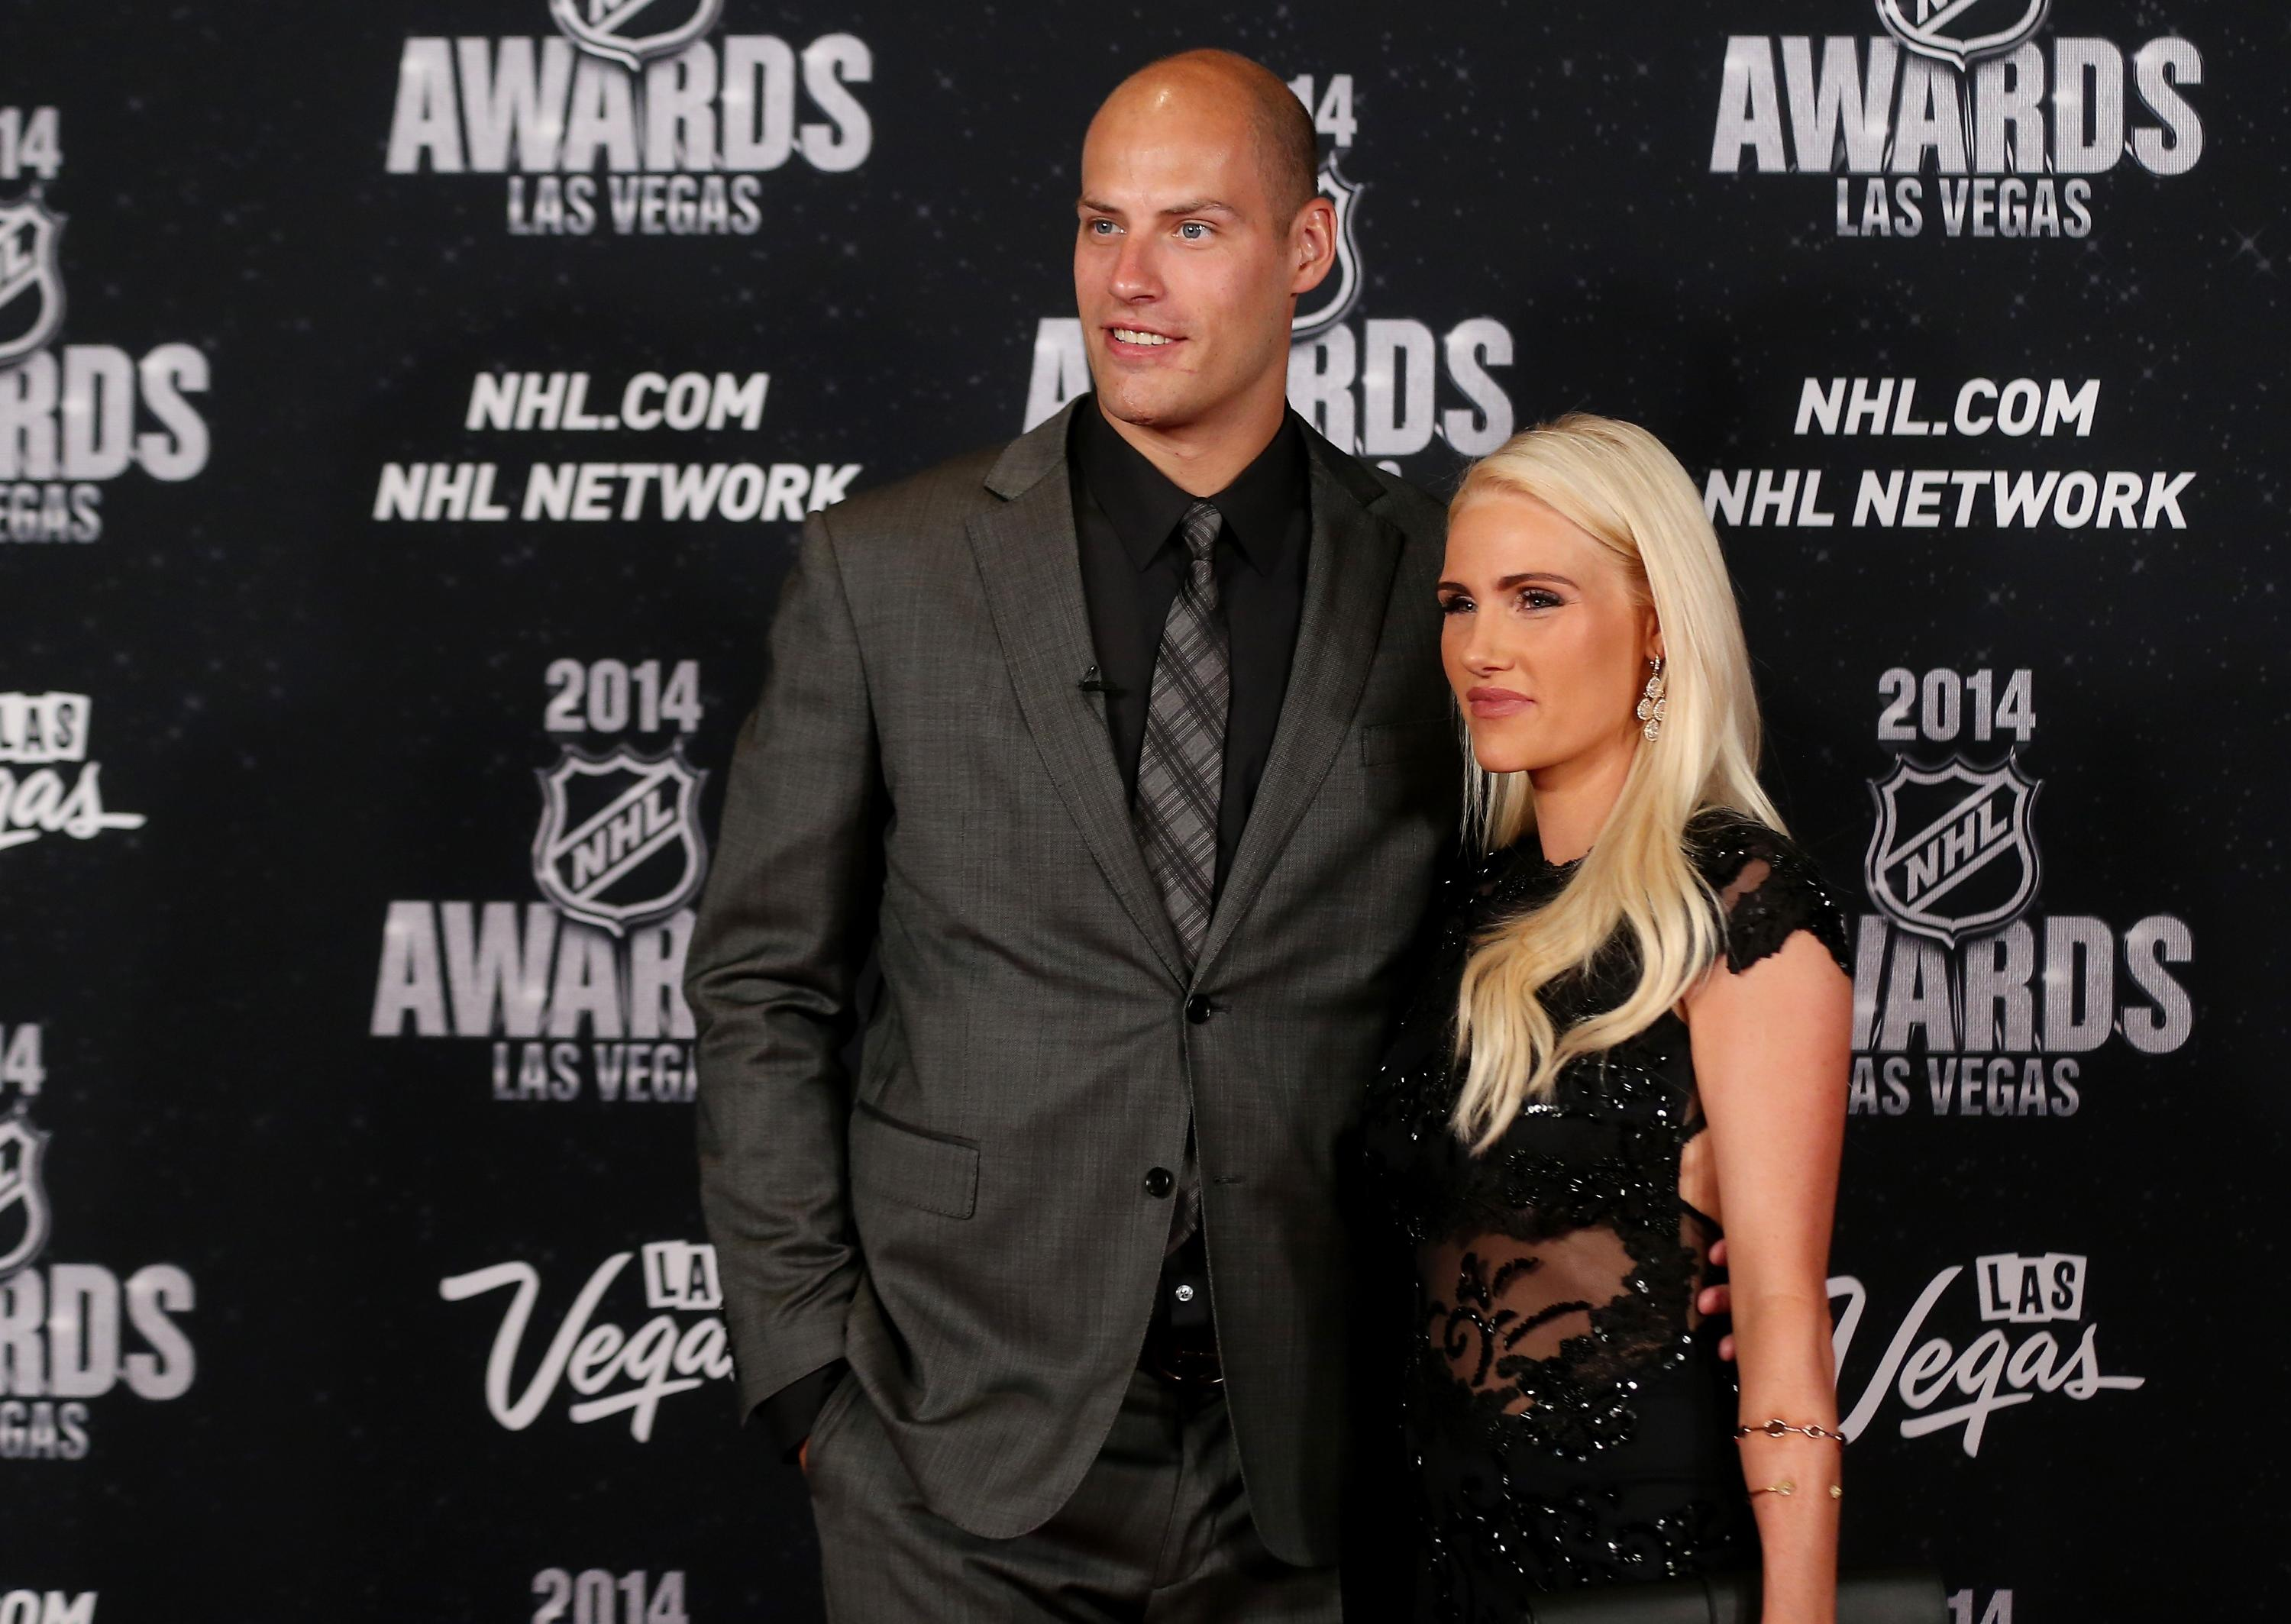 Paige Getzlaf talks 'Hockey Wives', emergency appendectomies, fighting (Puck Daddy Interview)